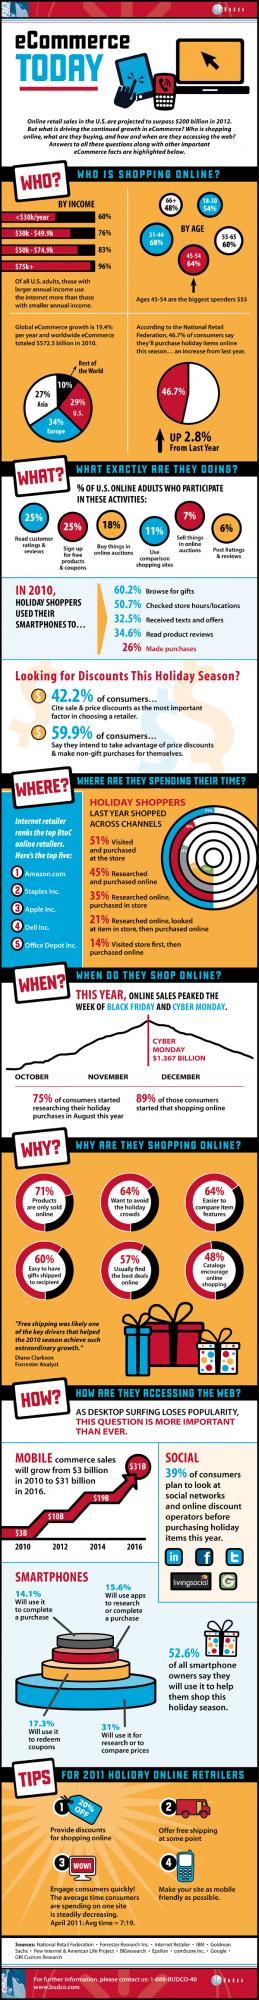 #Infographic: The continual rise of #ecommerce